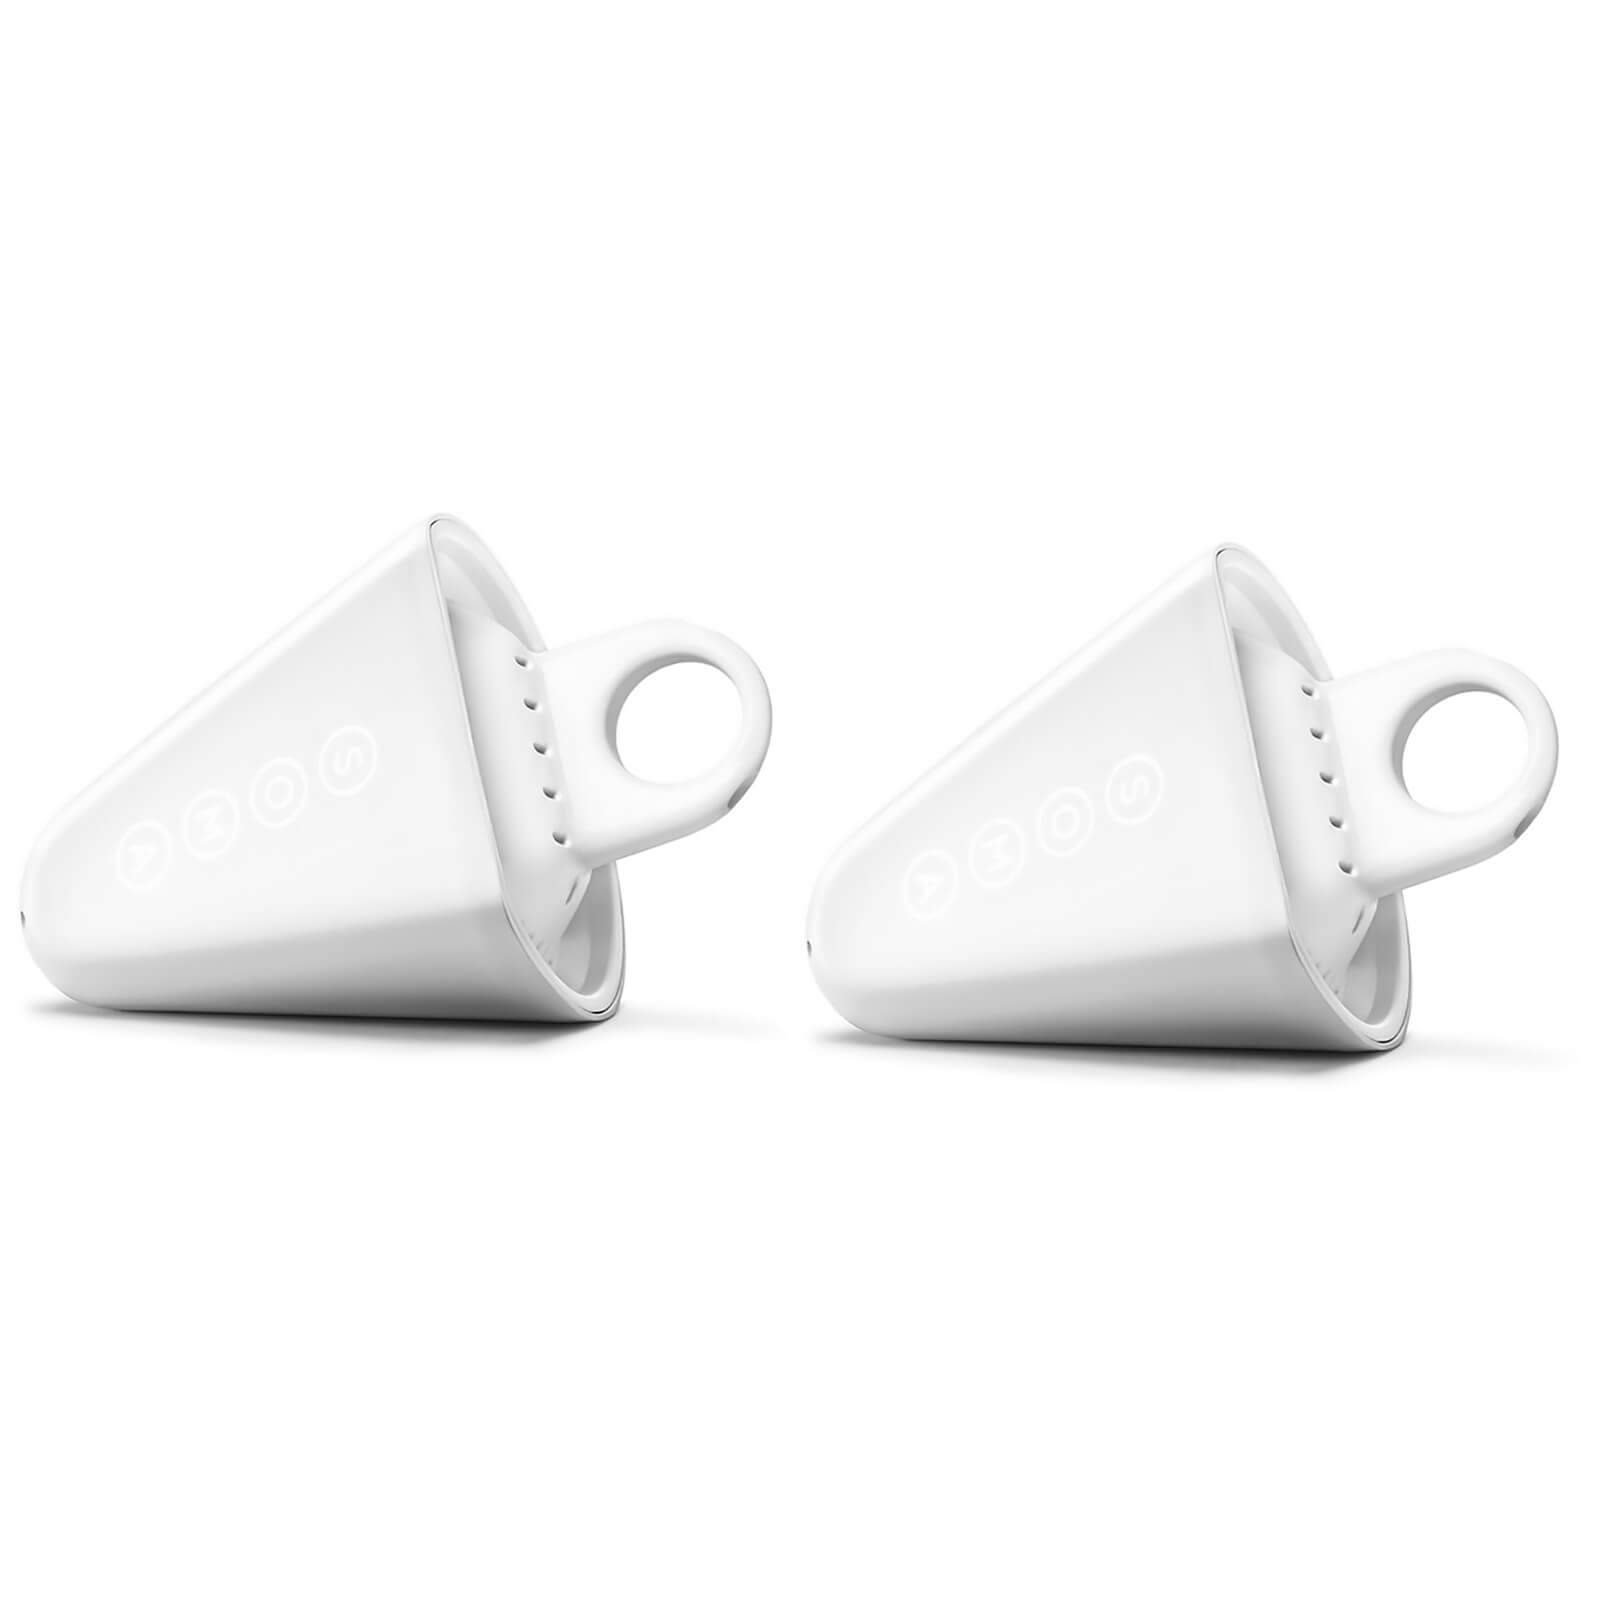 Soma Replacement Filter - 2 Pack - White